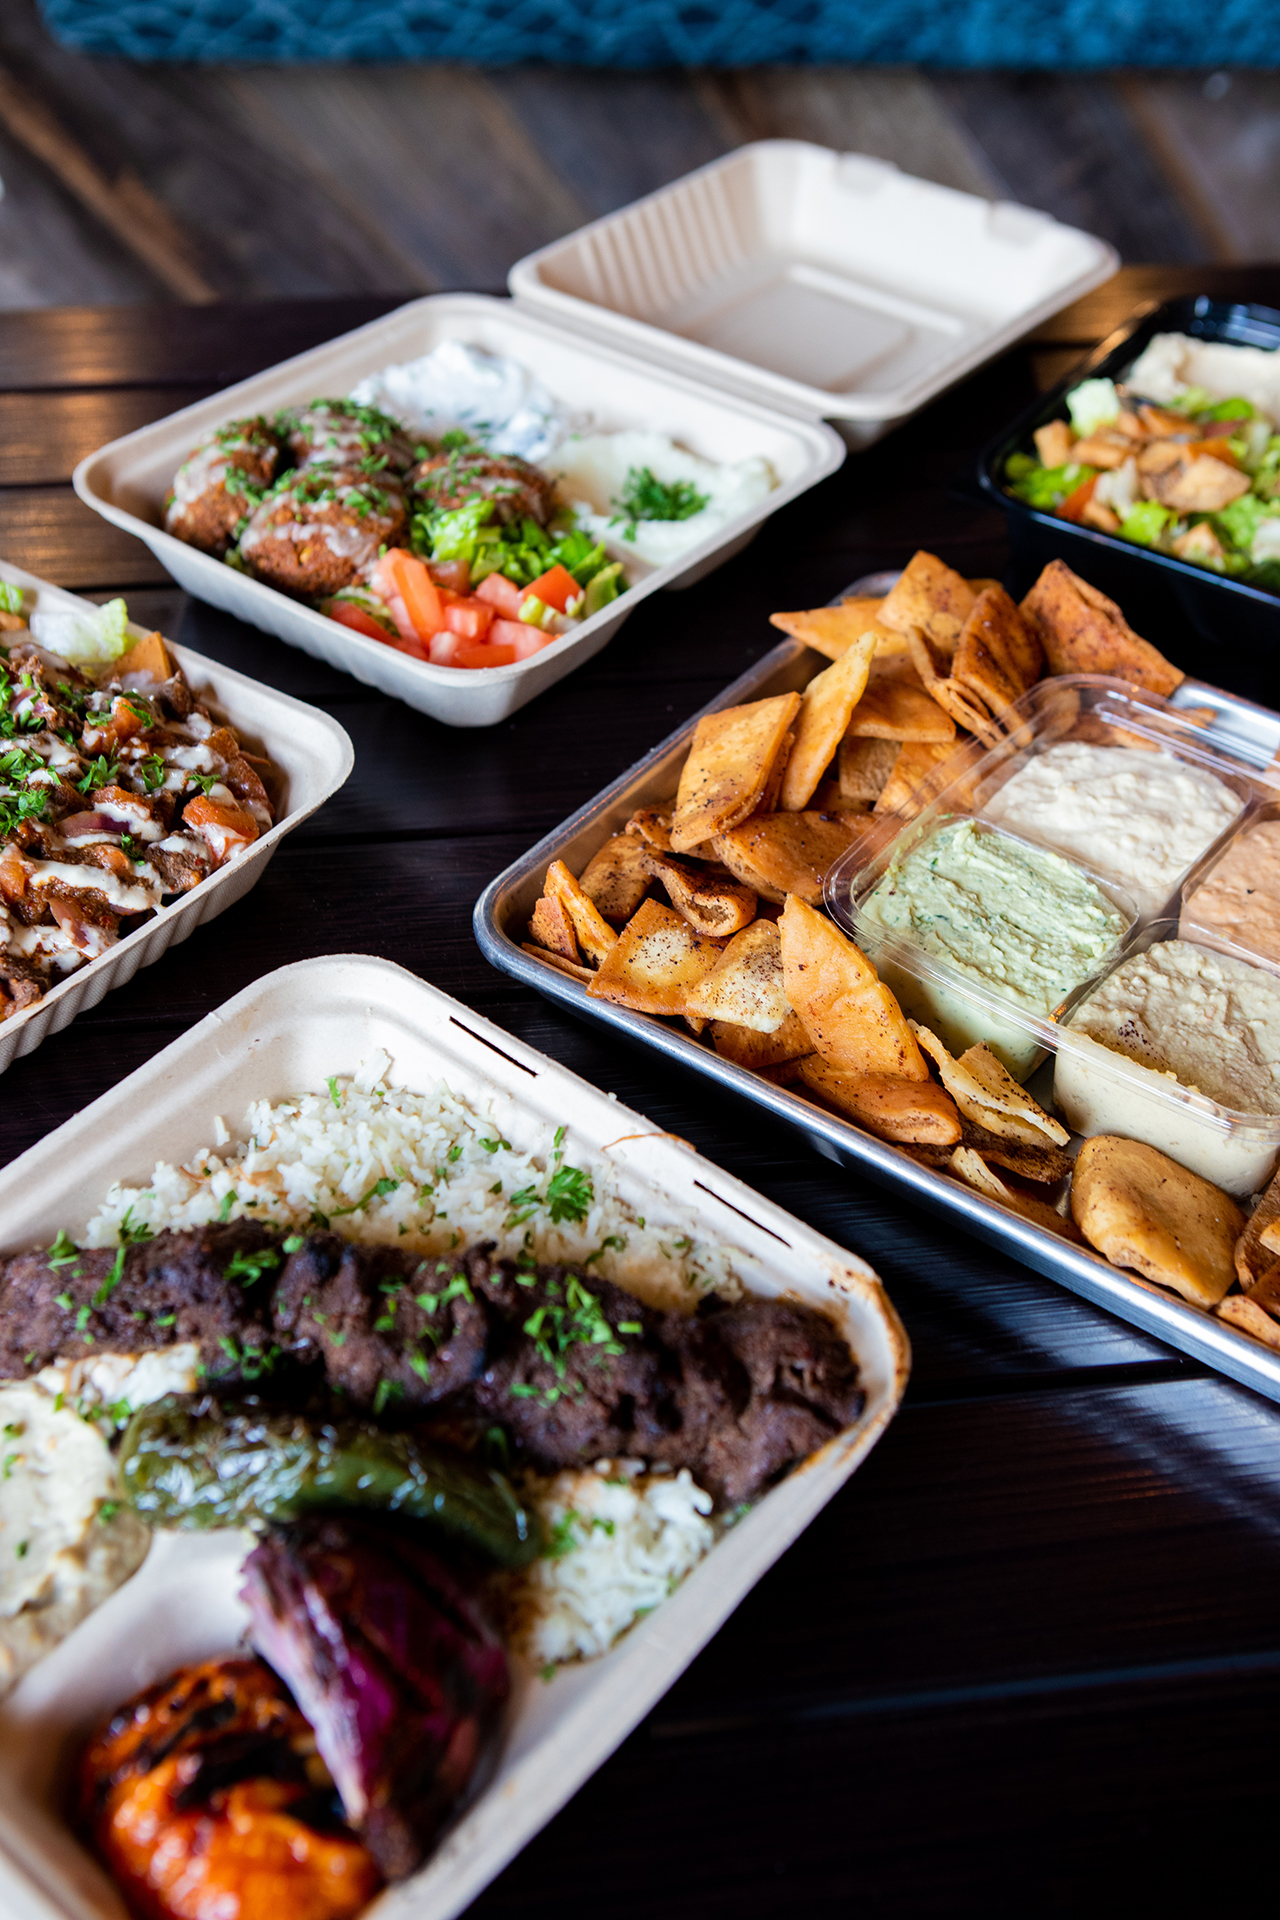 Inside the Hummus Labs restaurant, on top of a black metalic table, four signature dishes are pictured. The dishes are laid out on a 45 degree angle and staggered. Beef Shawarma Nachos. A Filet Mignon platter served with rice, grilled vegetables, and classic hummus. A Falafel platter served with Spicy Labneh, Garlic Paste, and Salad. A Party Pack with Classic Hummus, Cilantro Jalapeño Hummus, Roasted Tomato Habanero Hummus, Cumin Lime Hummus, and surrounded by fresh fried pita chips.